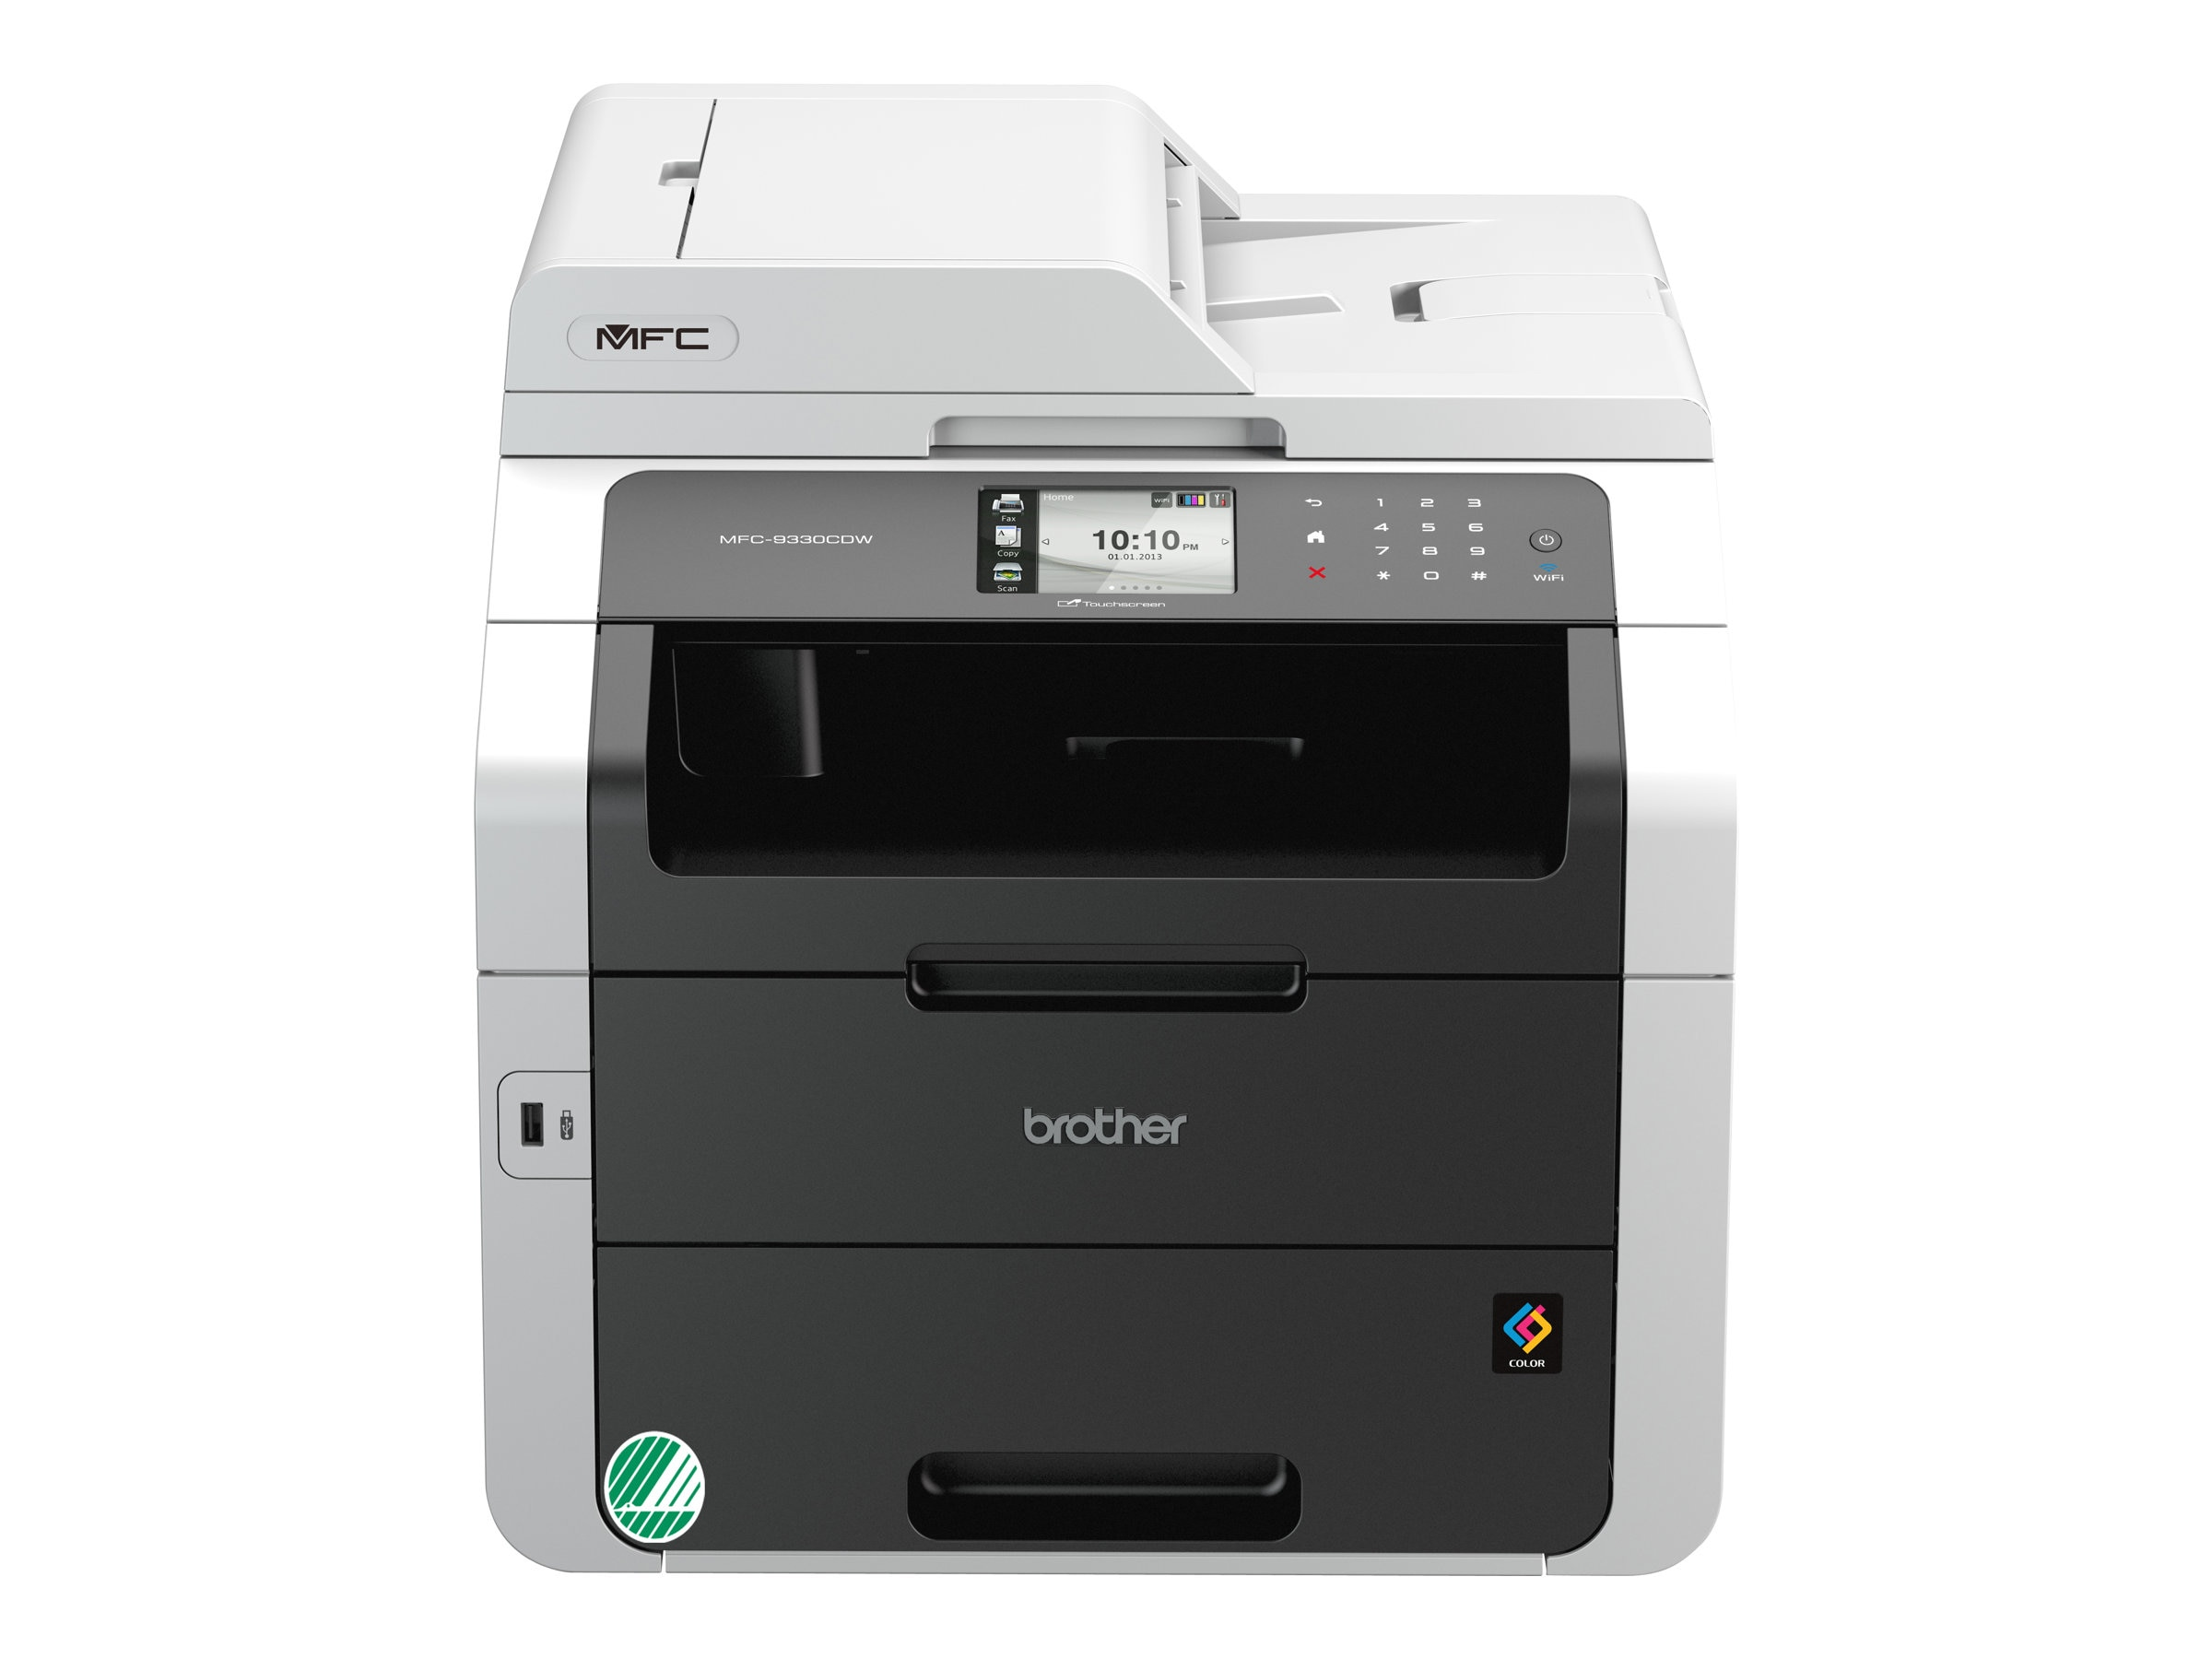 Brother MFC-9330CDW Image 2